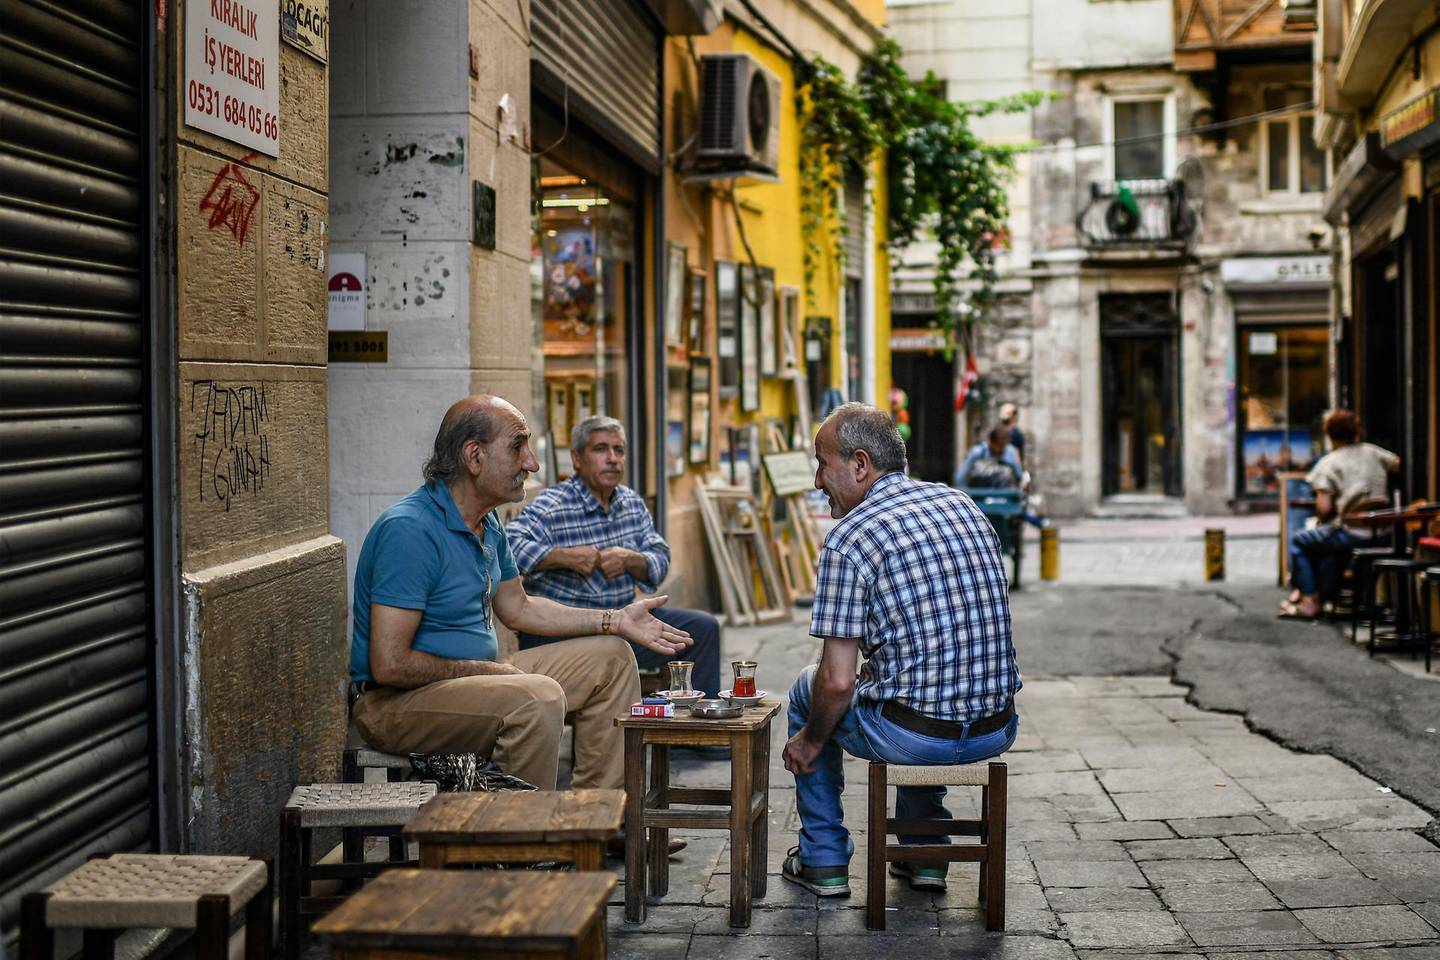 Men chat as they drink tea on June 22, 2018 in Istanbul. - Turkey is preparing for tight presidential and parliamentary elections due on June 24, while many analysts say President Erdogan wants a major foreign policy success to give him a final boost. (Photo by Aris MESSINIS / AFP)